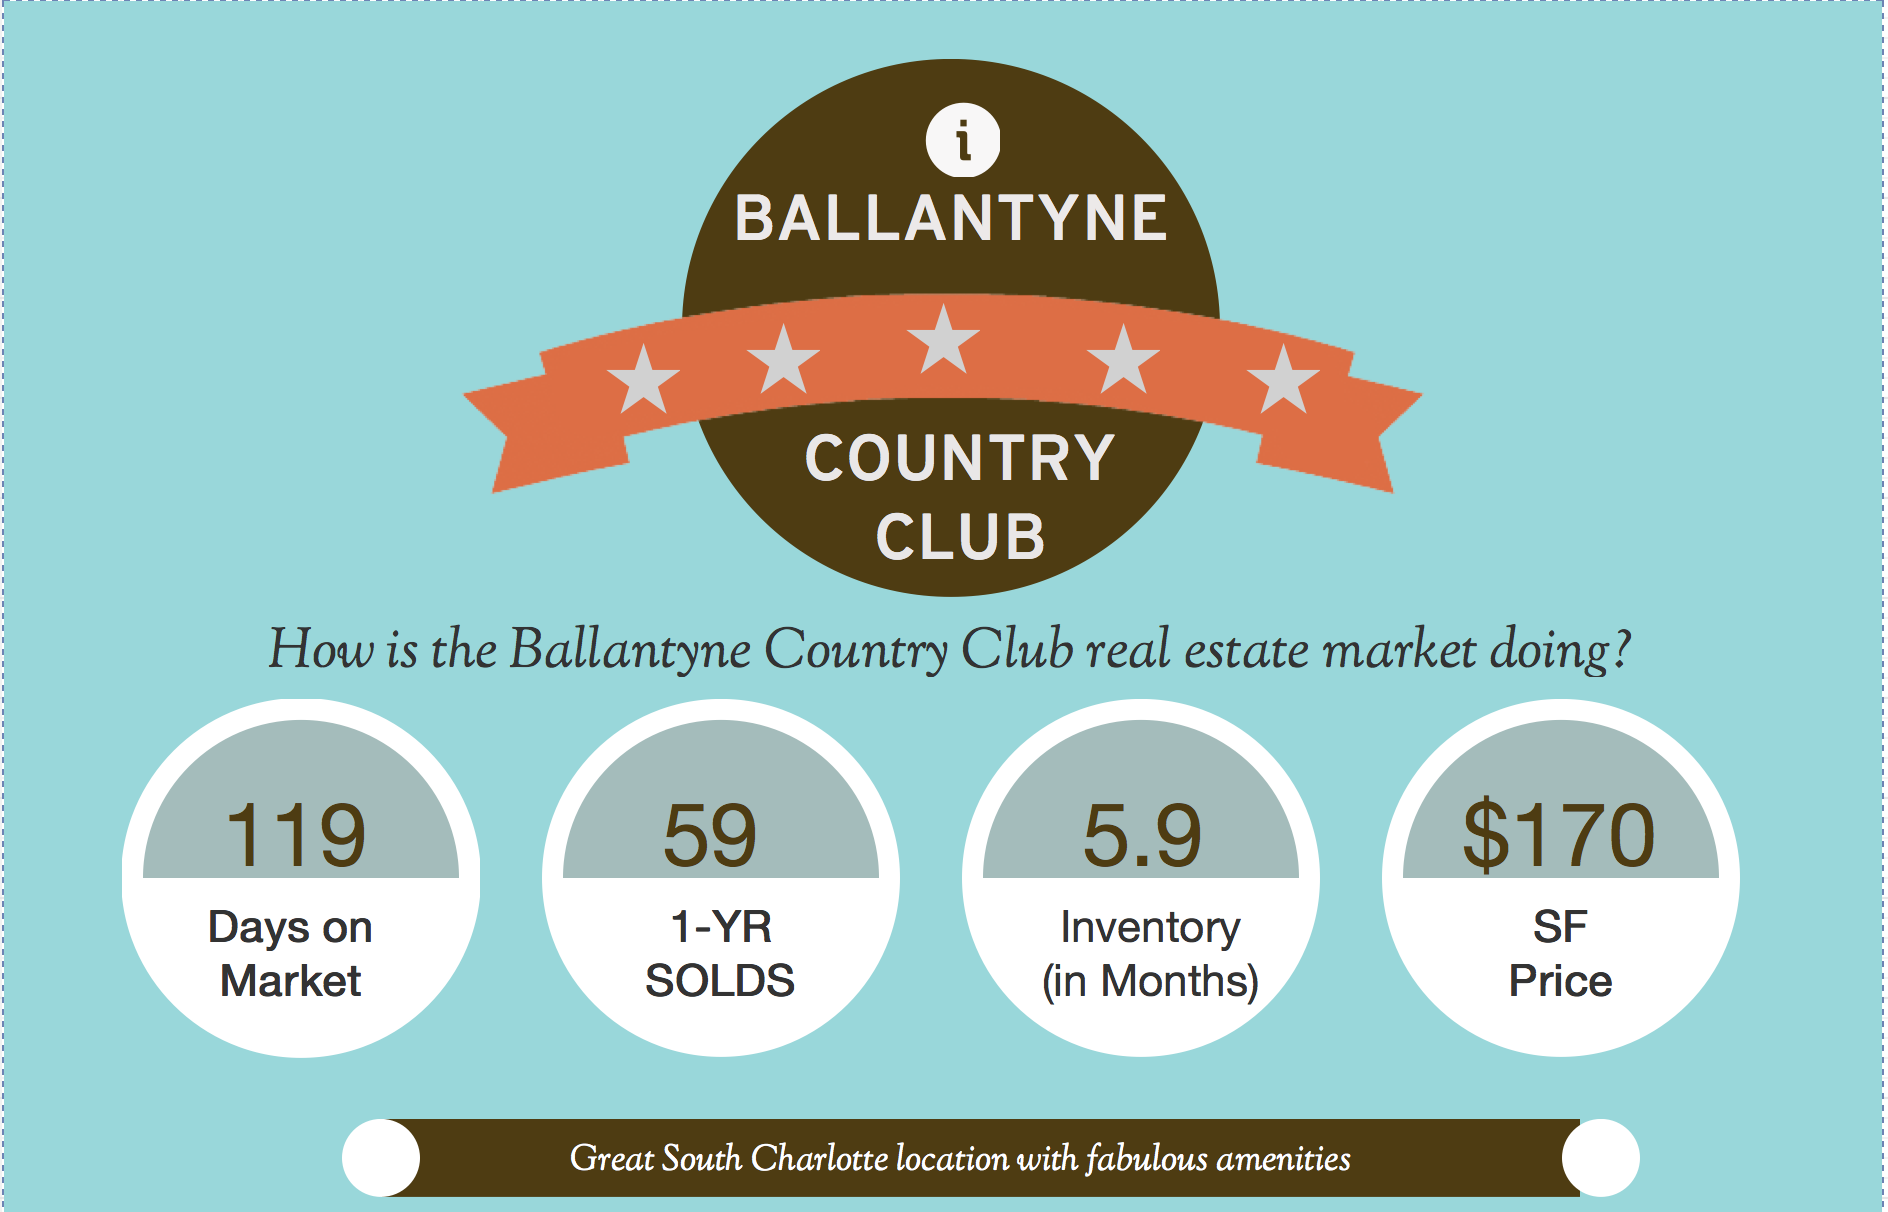 Ballantyne Country Club real estate market report